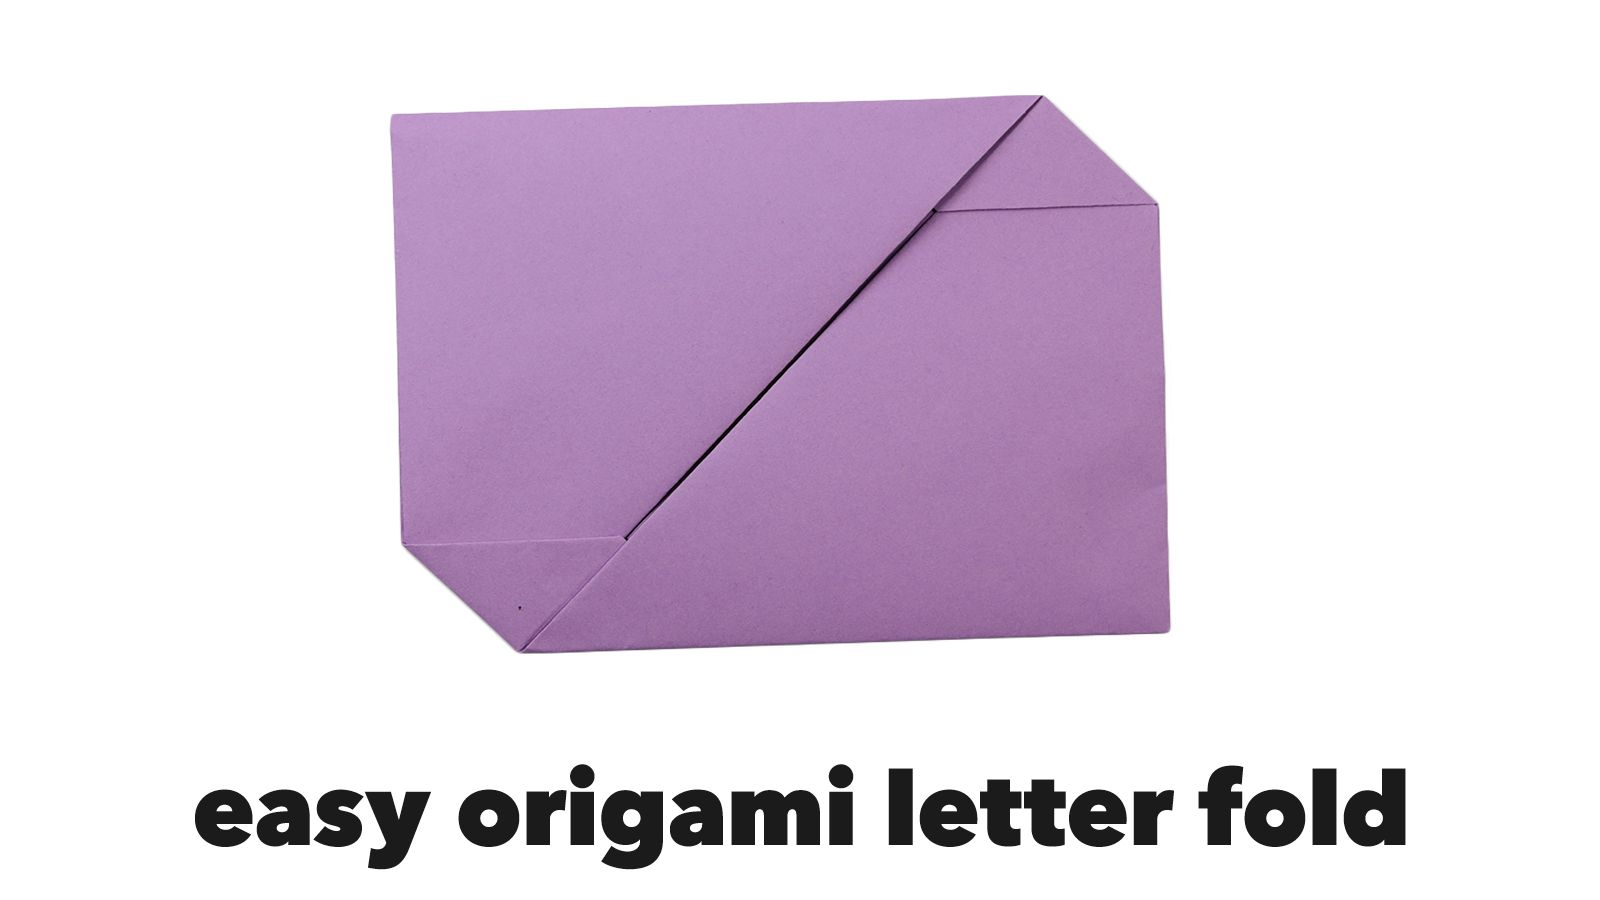 Digital Origami Letter | ORIGAMI LETTER | Brother | 900x1600